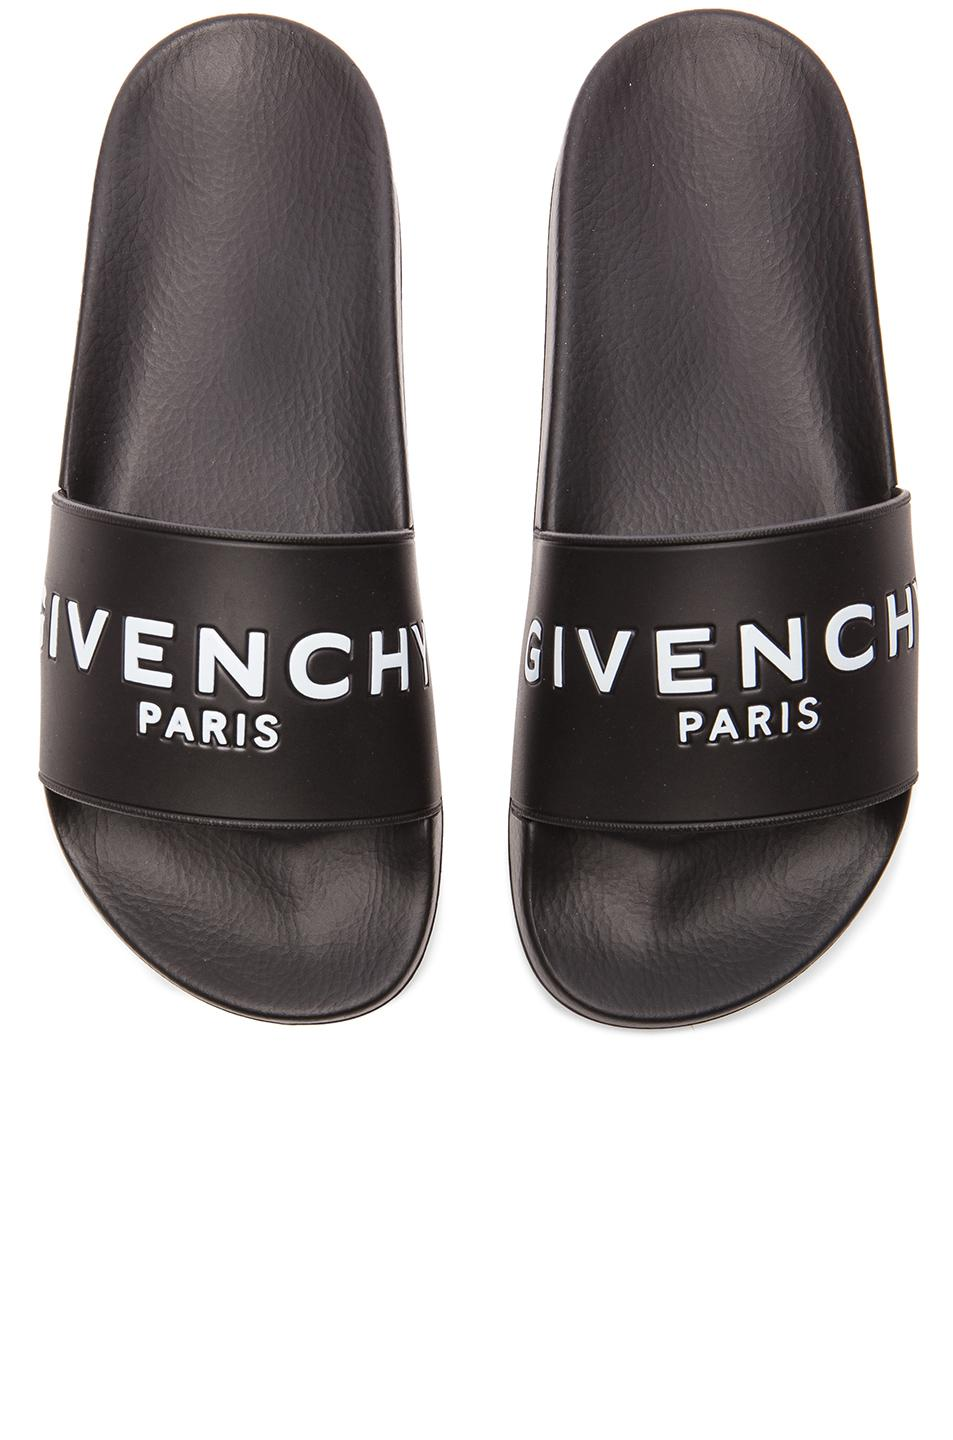 Givenchy Polyurethane Slide Sandals in . S0QeHYC6cp